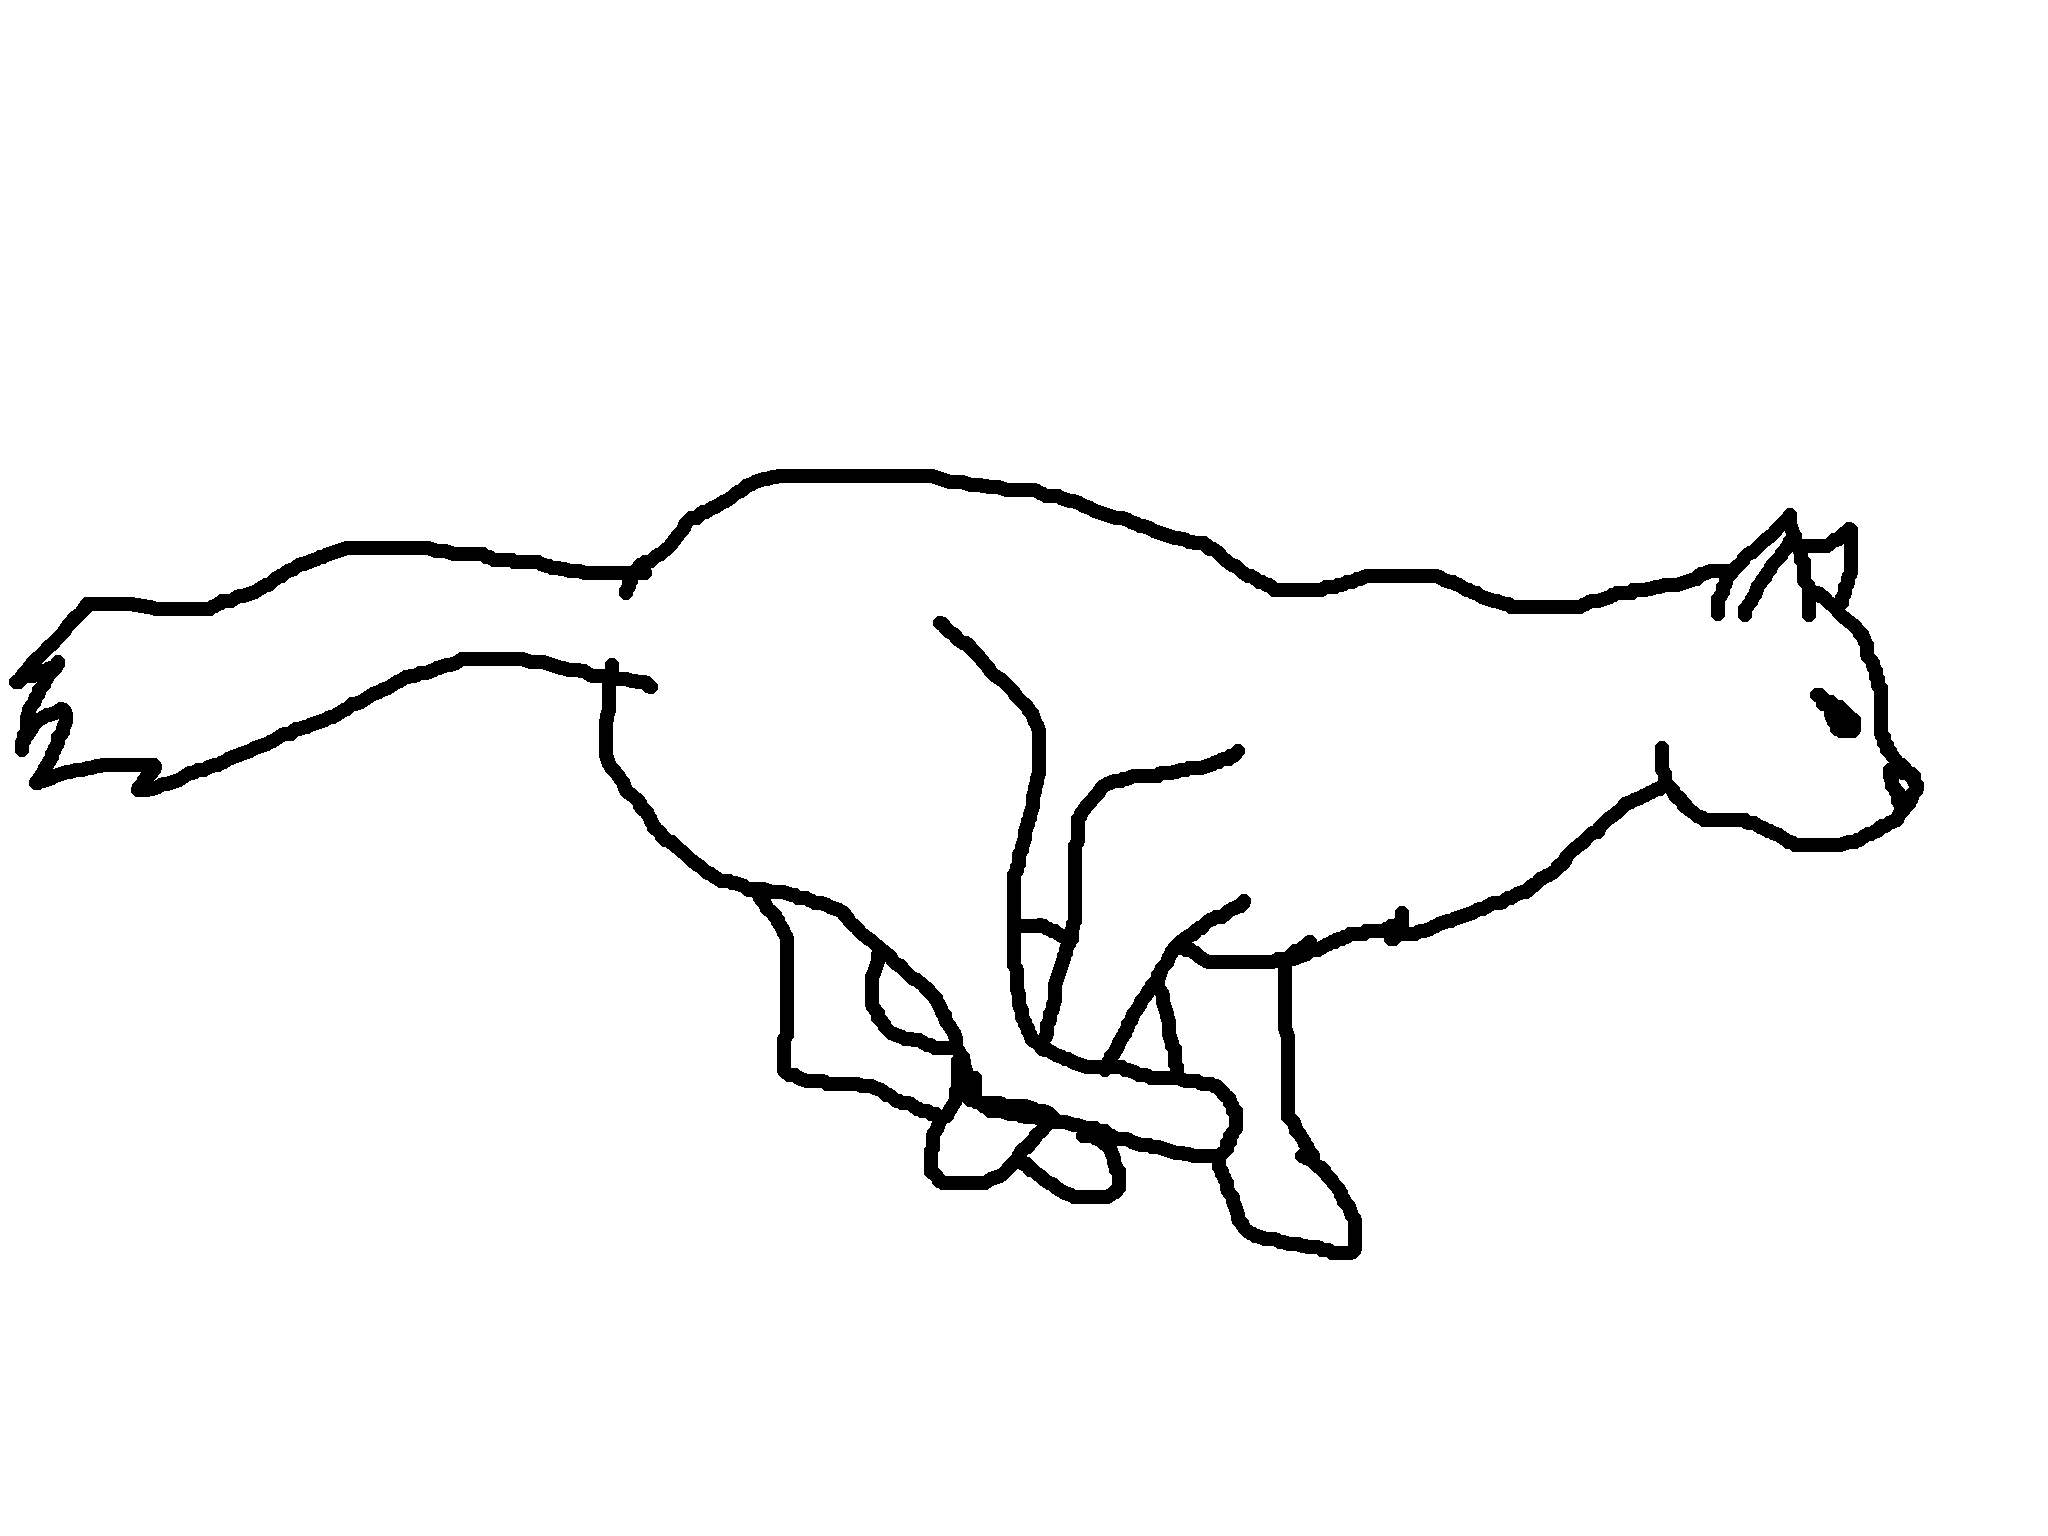 Real cat drawing clipart svg library Realistic Cat Clipart - Clipart Kid svg library